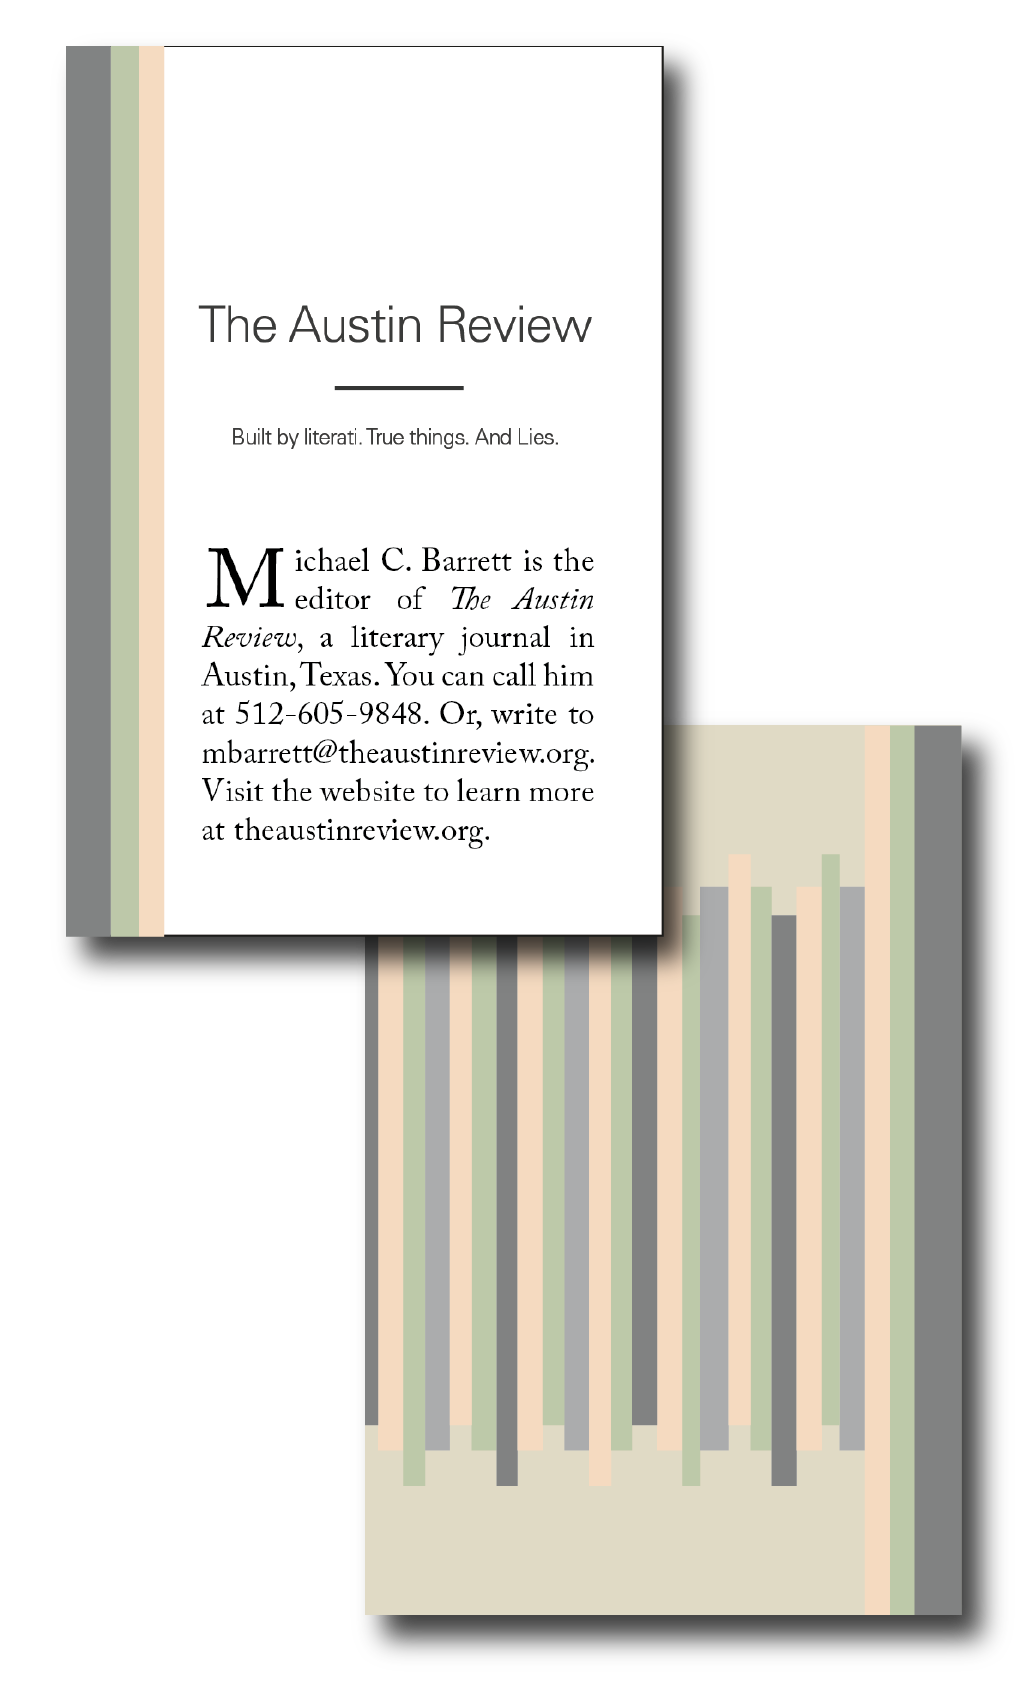 The Austin Review